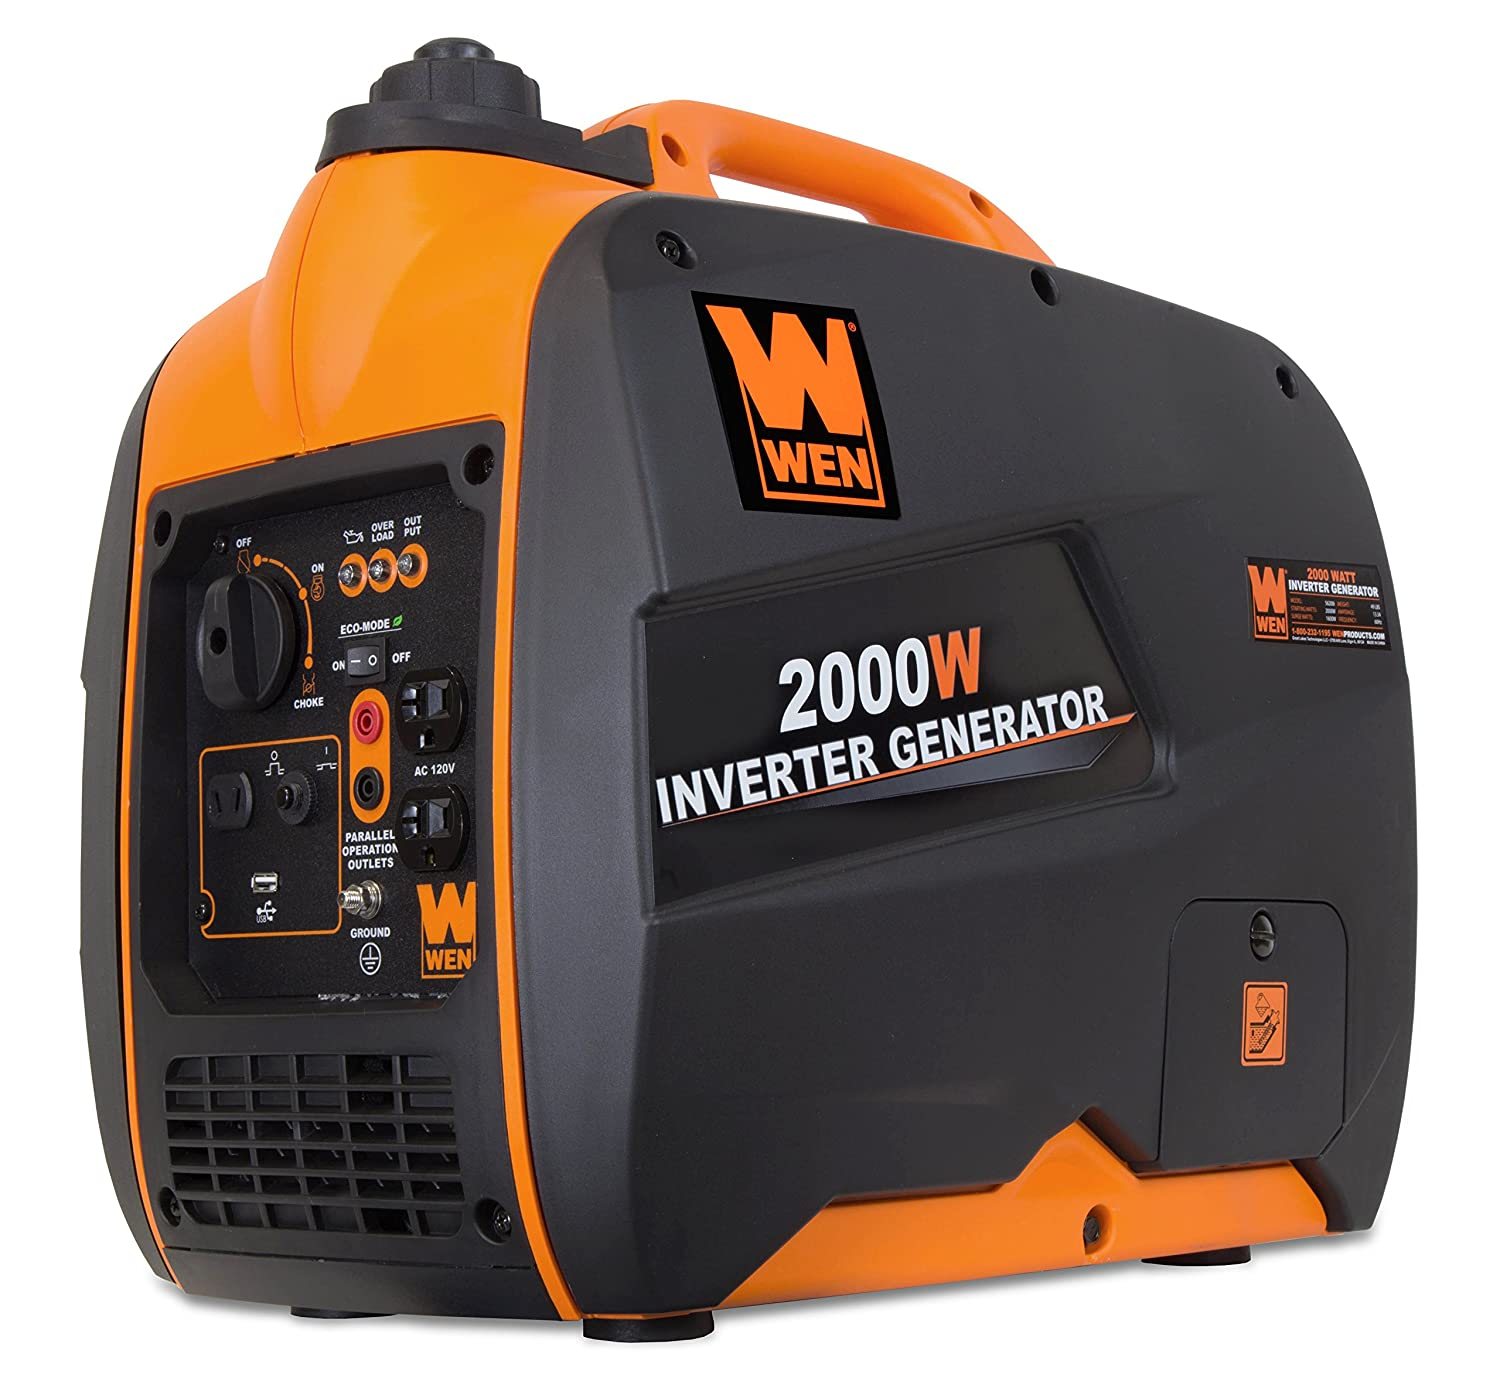 Wen 56200i Super Quiet 2000 Watt Portable Inverter How To Make An Electrical Circuit Board Ehow Uk Generator Carb Compliant Garden Outdoor